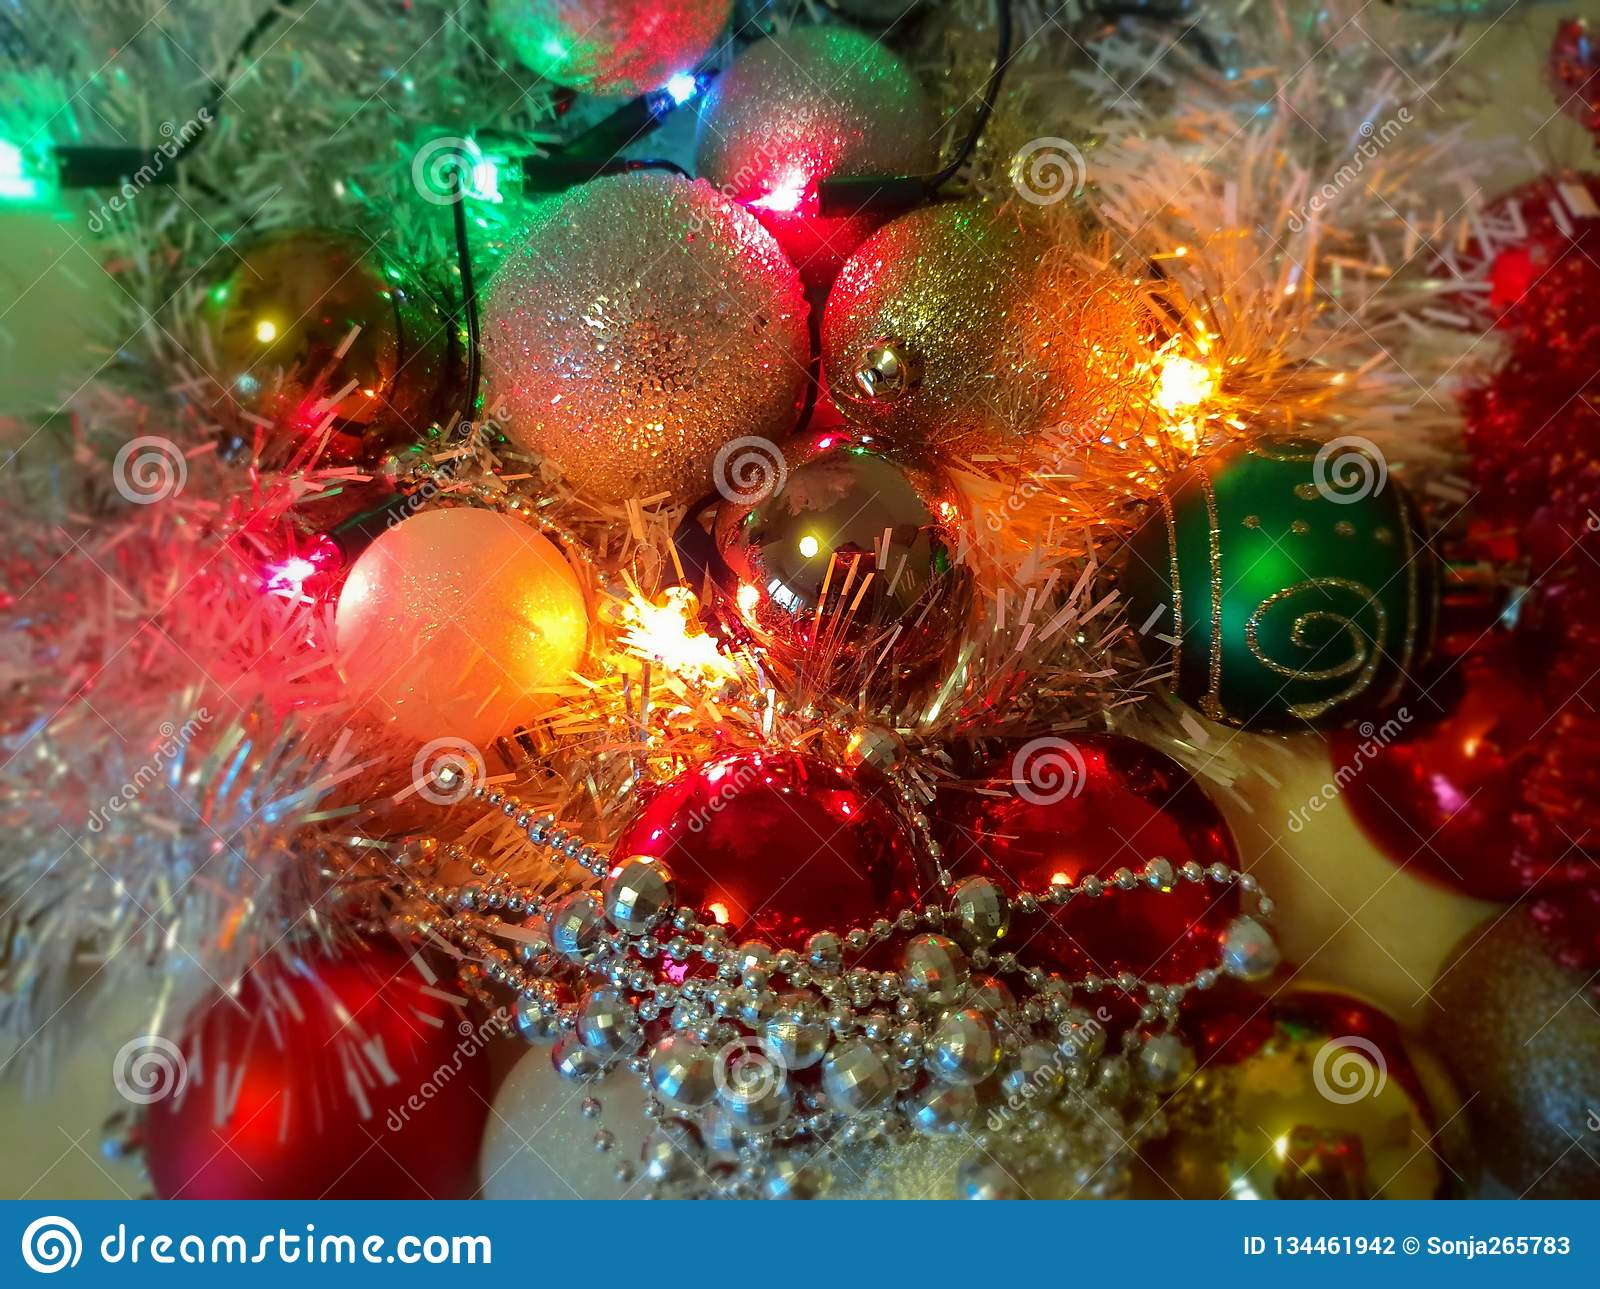 Colorful Christmas Tree Ideas.Colorful Christmas Decoration Ideas White Balls Silver